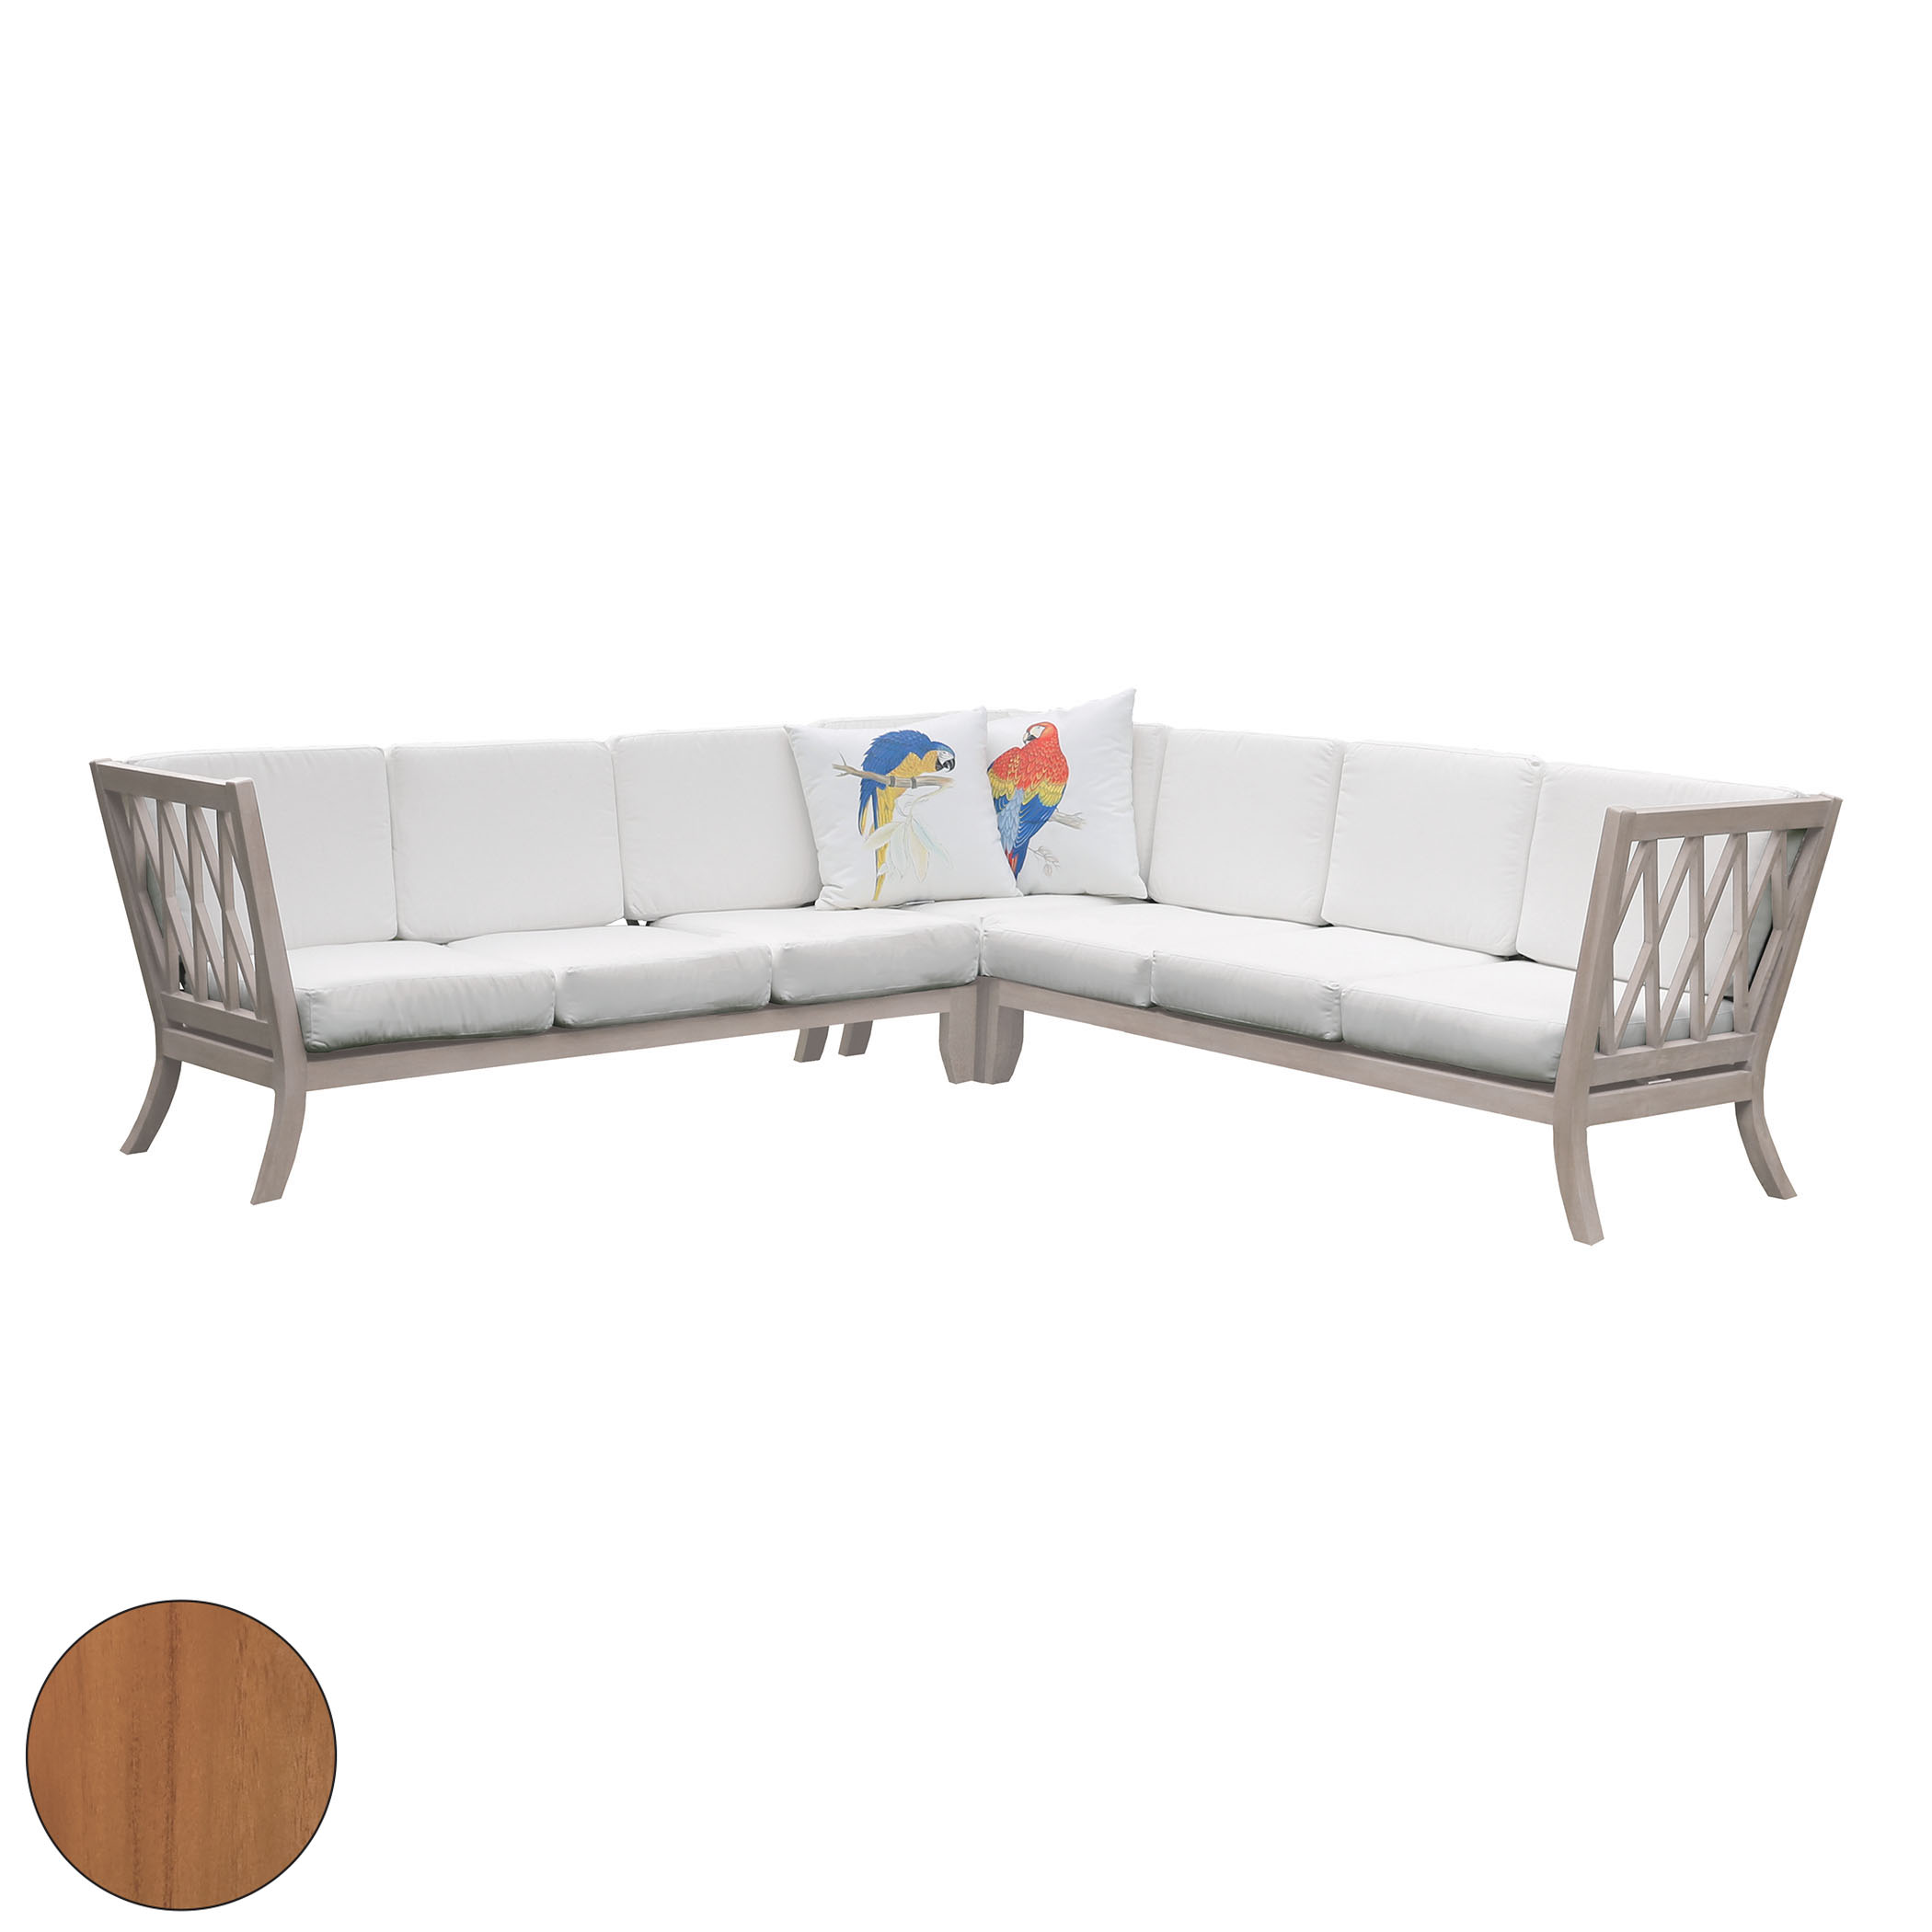 Hilton Outdoor Sectional with White Cushions Set of 15 | Elk Home